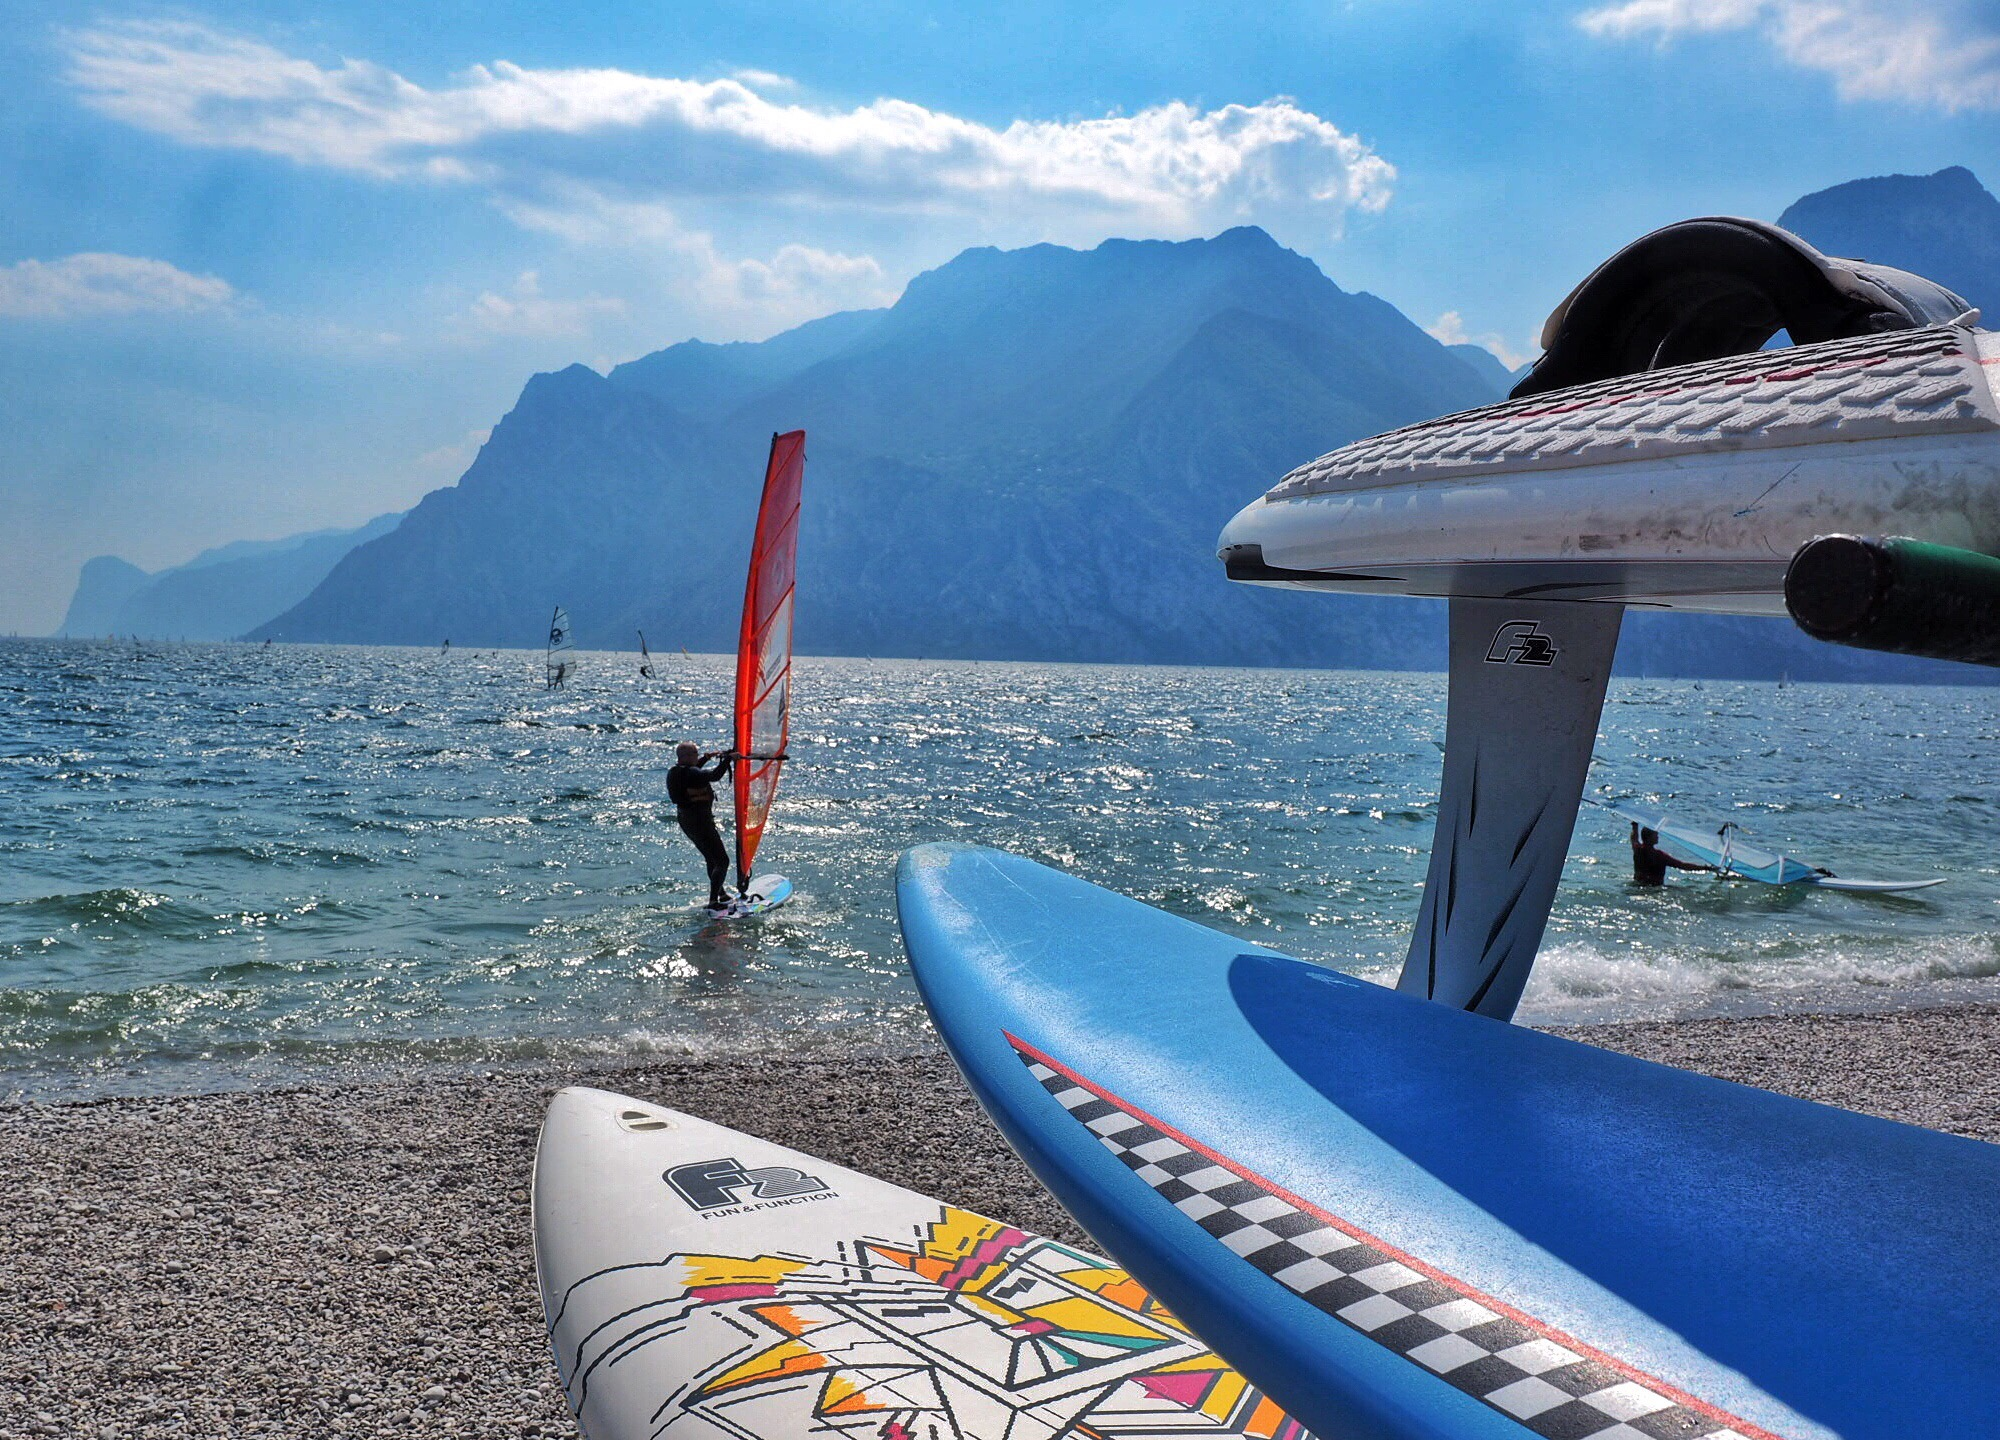 The town of Torbole, Italy, on the north shore of Lake Garda, is a prime windsurfing destination (Photo by Laura Bly)